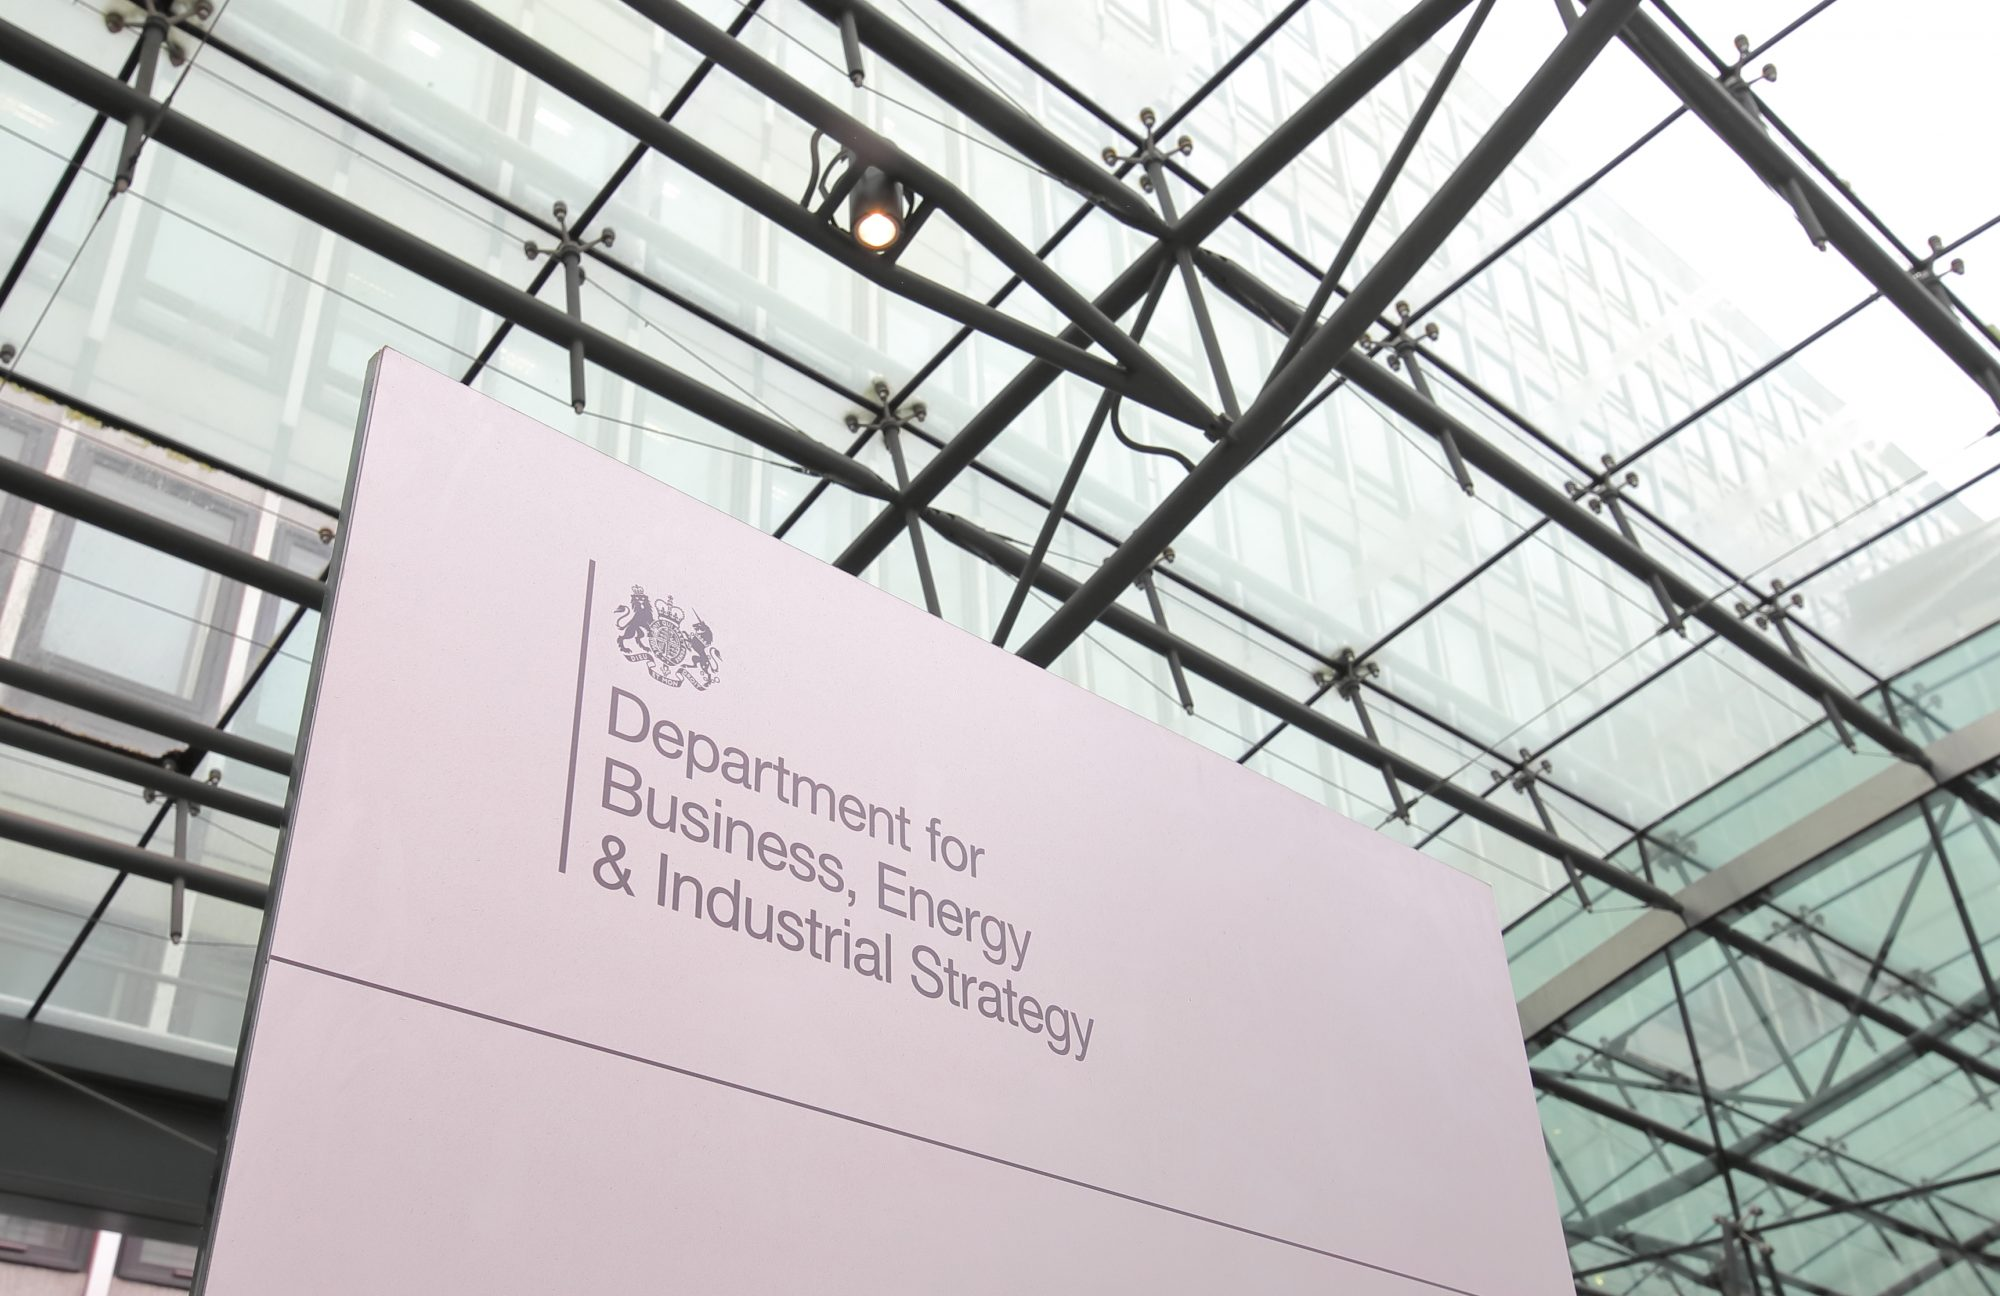 £1bn to drive down emissions from industry and public buildings